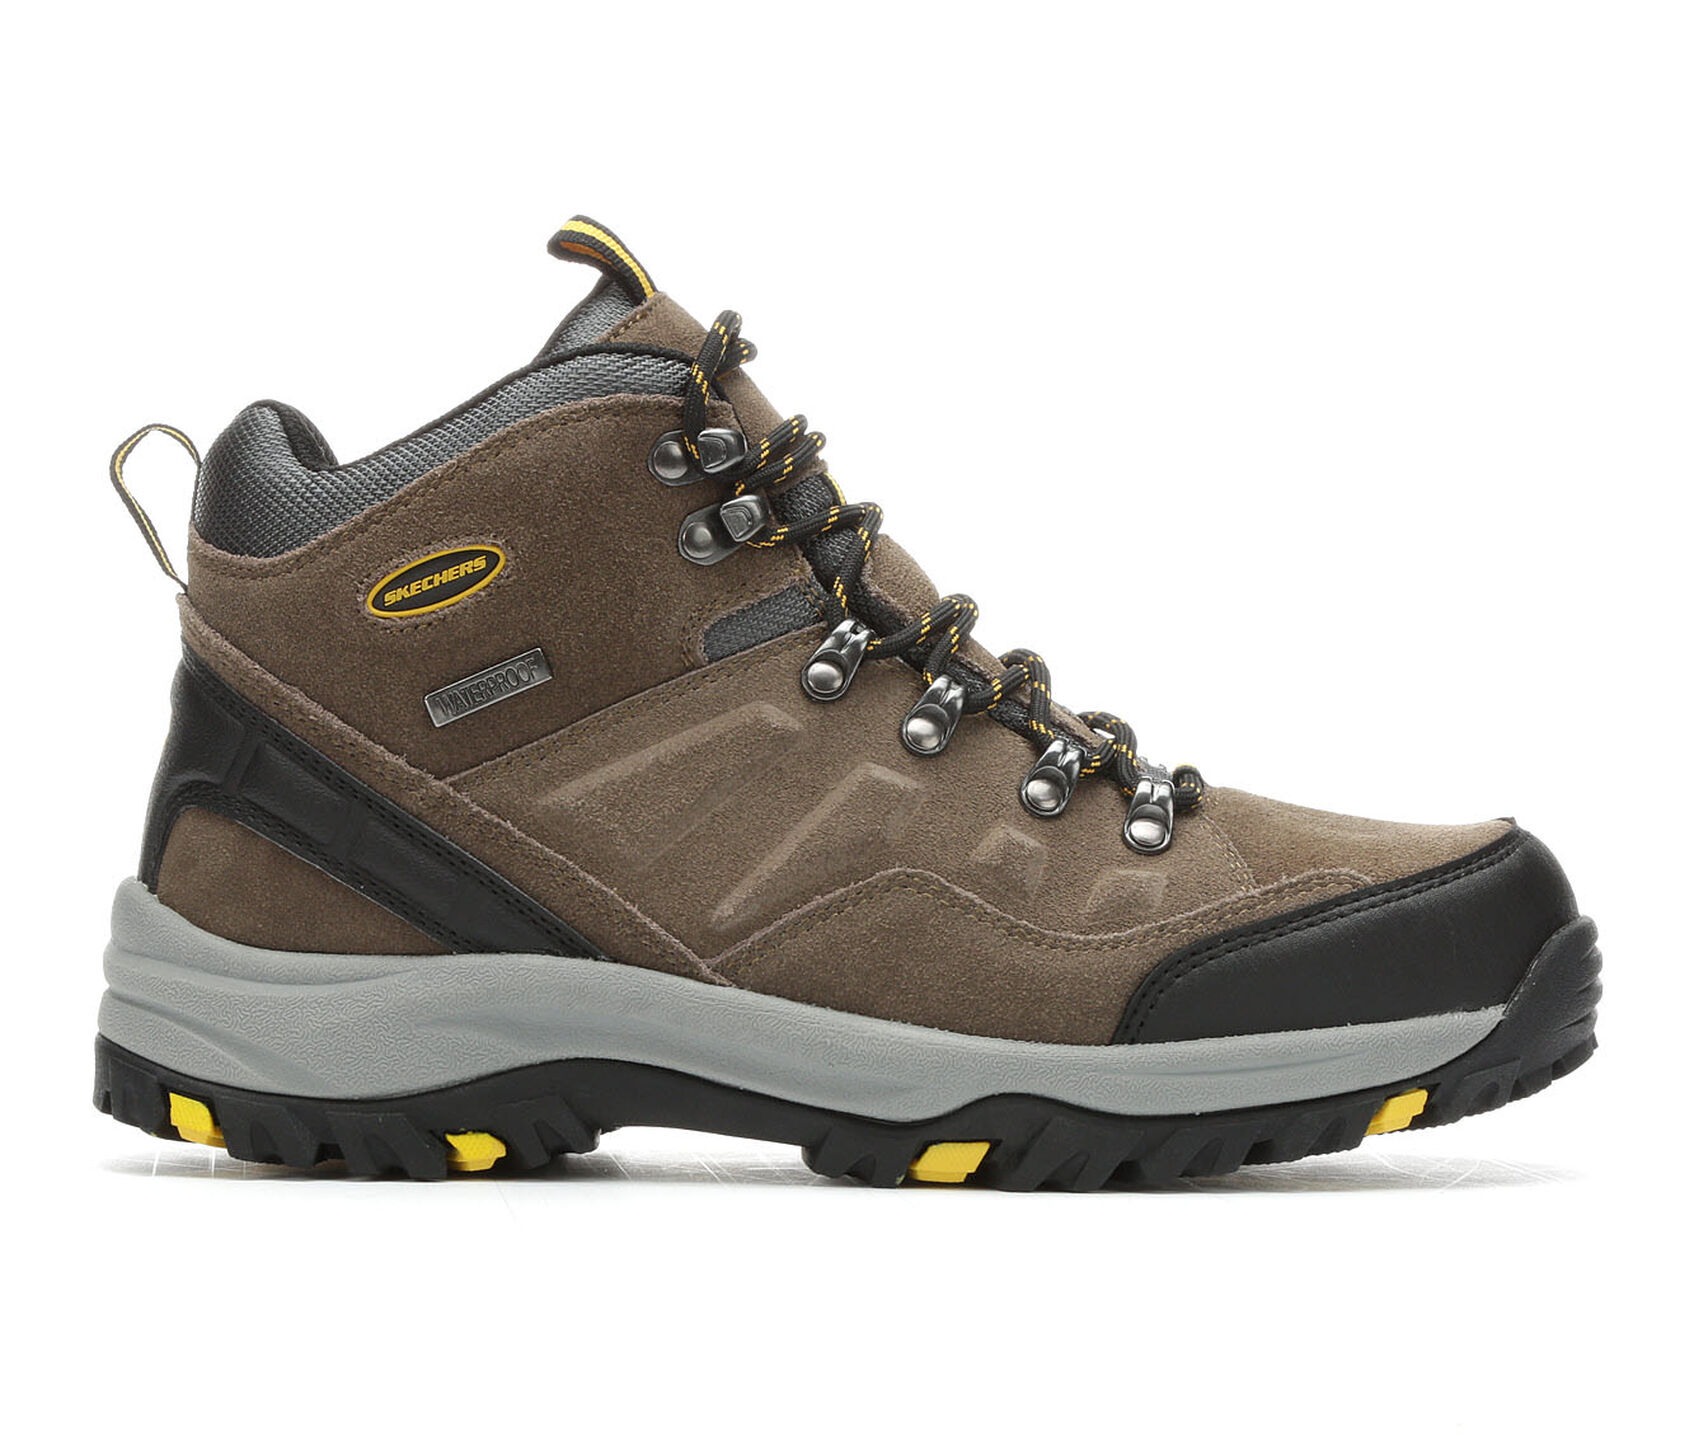 485d235c3344 ... Skechers Pelmo 64869 Hiking Boots. Previous